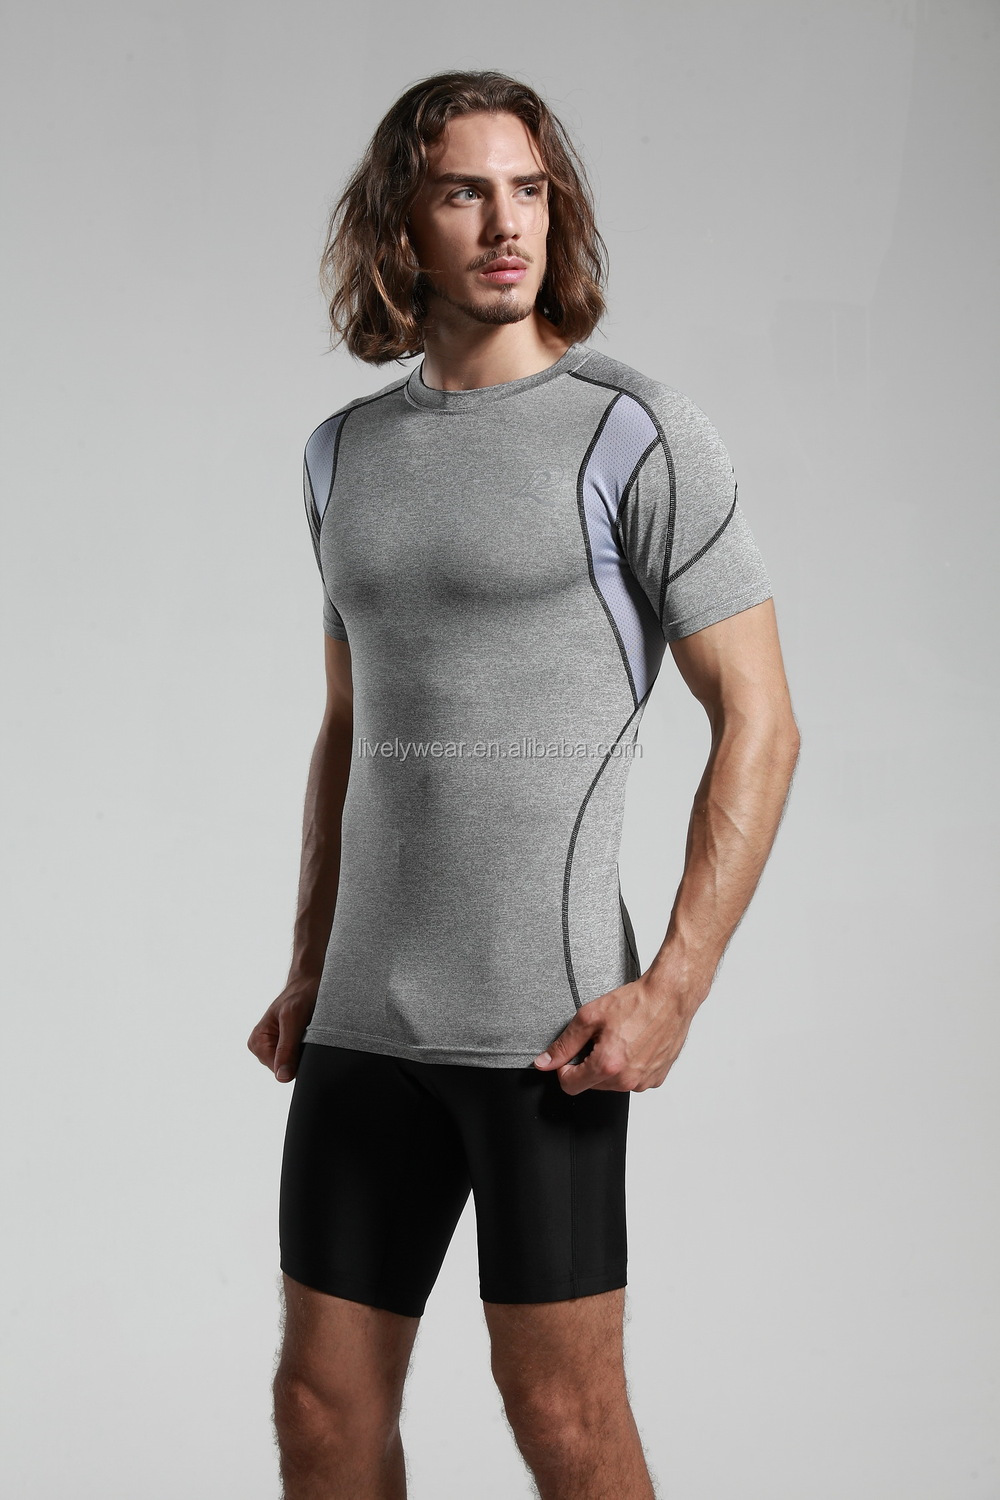 Lively-- Bodybuilding Custom Men's Compression Shirt Sports Fitness Apparel, Active Wear